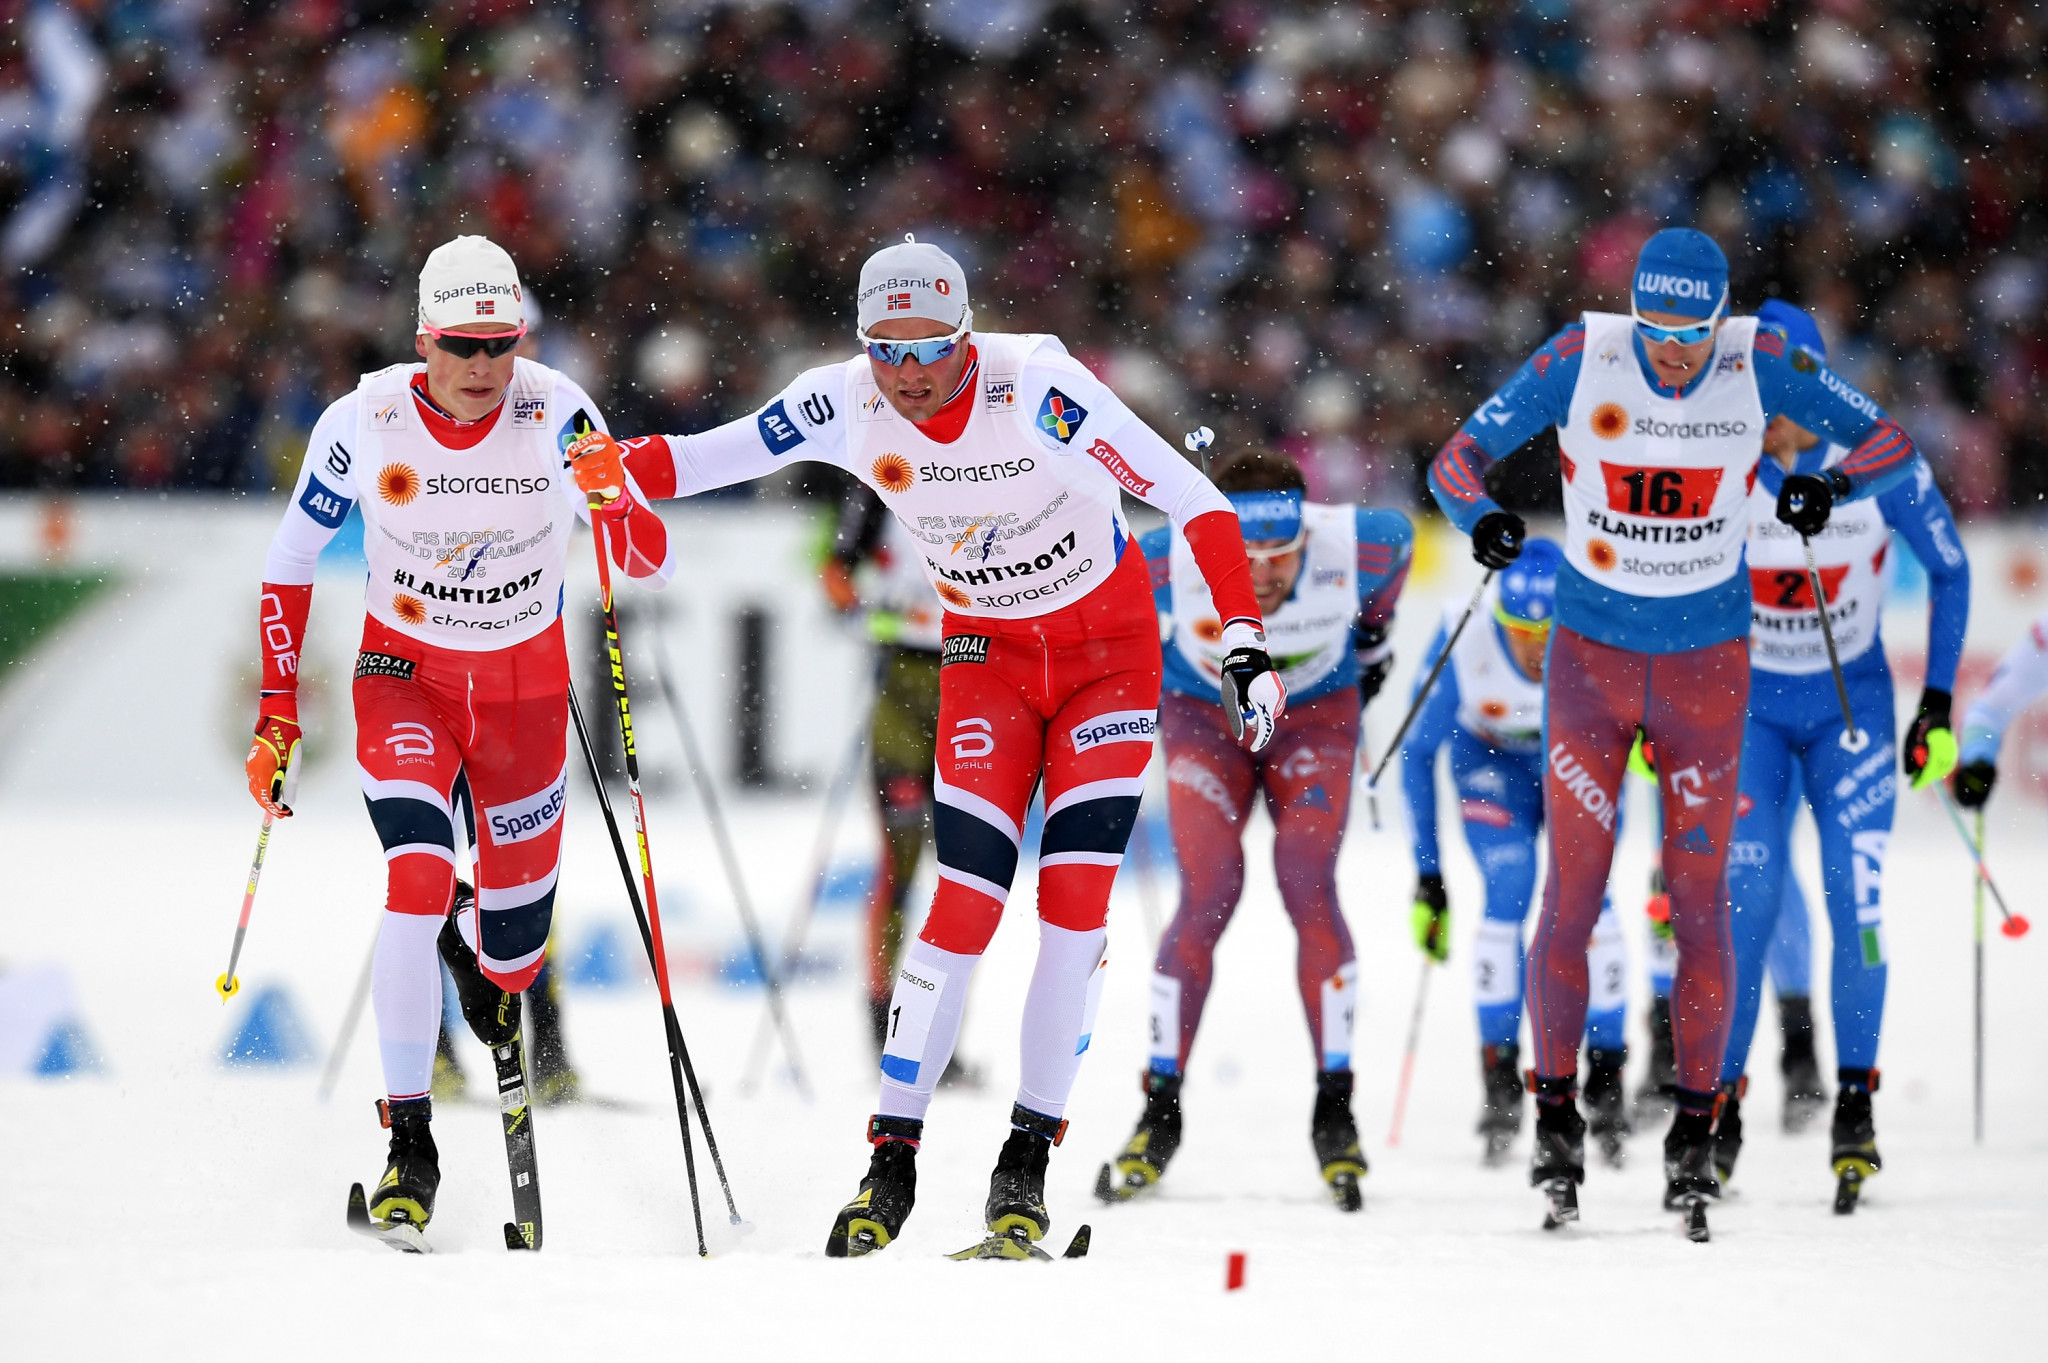 Johannes Høsflot Klæbo and Emil Iversen won the men's race for Norway ©Getty Images